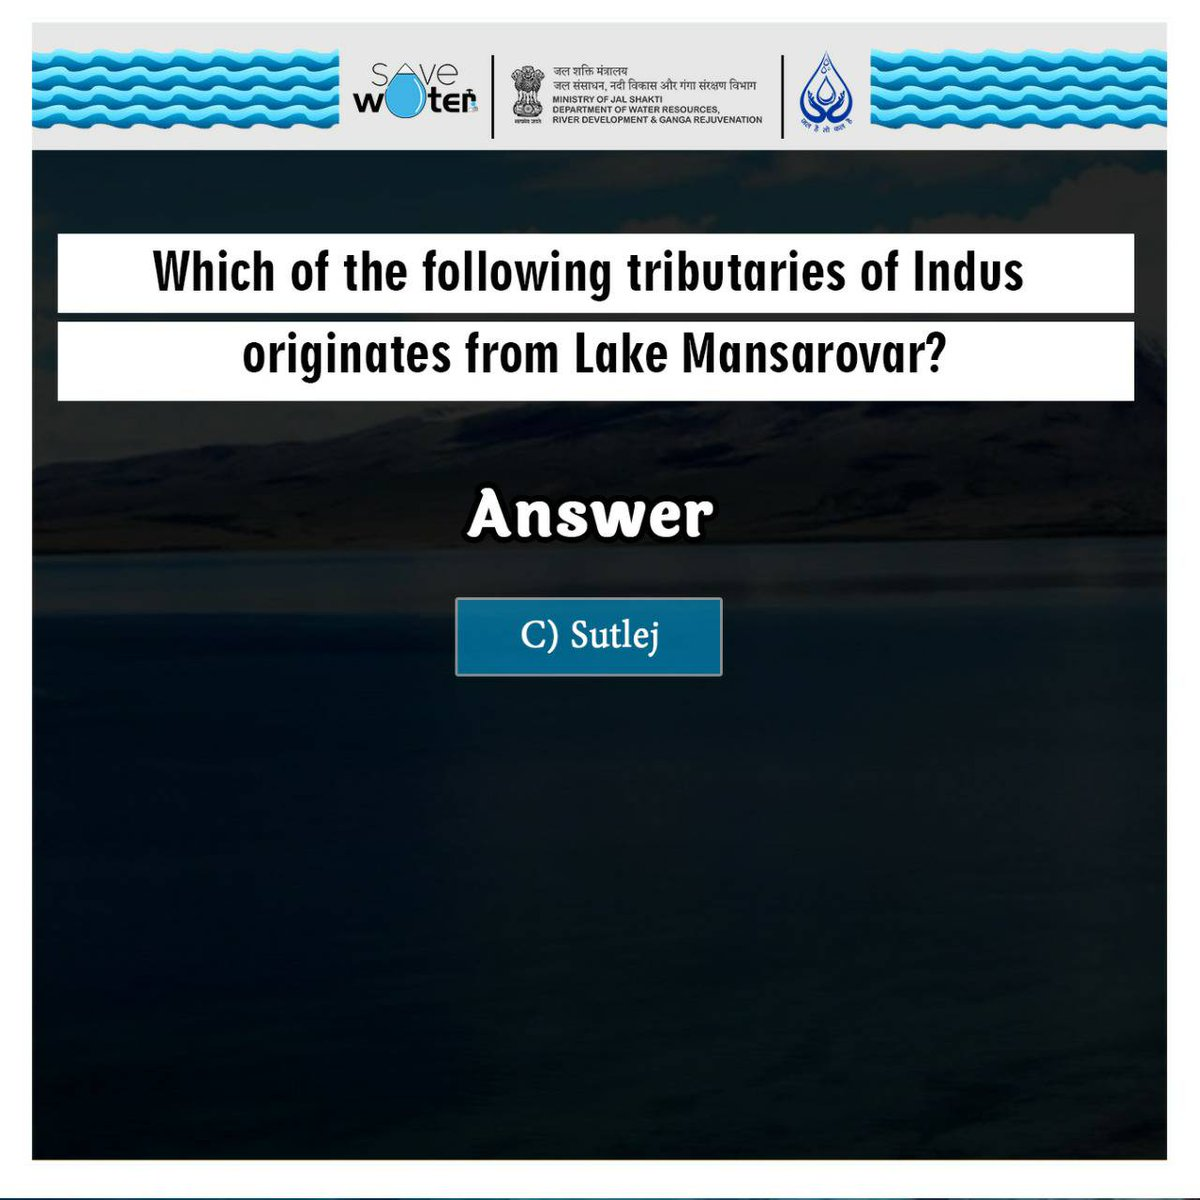 Think, Learn, Execute..!!  Here's the answer to yesterday's quiz👉(C).  Follow us on  Twitter:  https://t.co/wV7FpIz6cn  Facebook:  https://t.co/jql0P7TnrW  Instagram:  https://t.co/c0v2xIs8bh  #SaveWater #Quiz #Water https://t.co/hvn4atDMuW